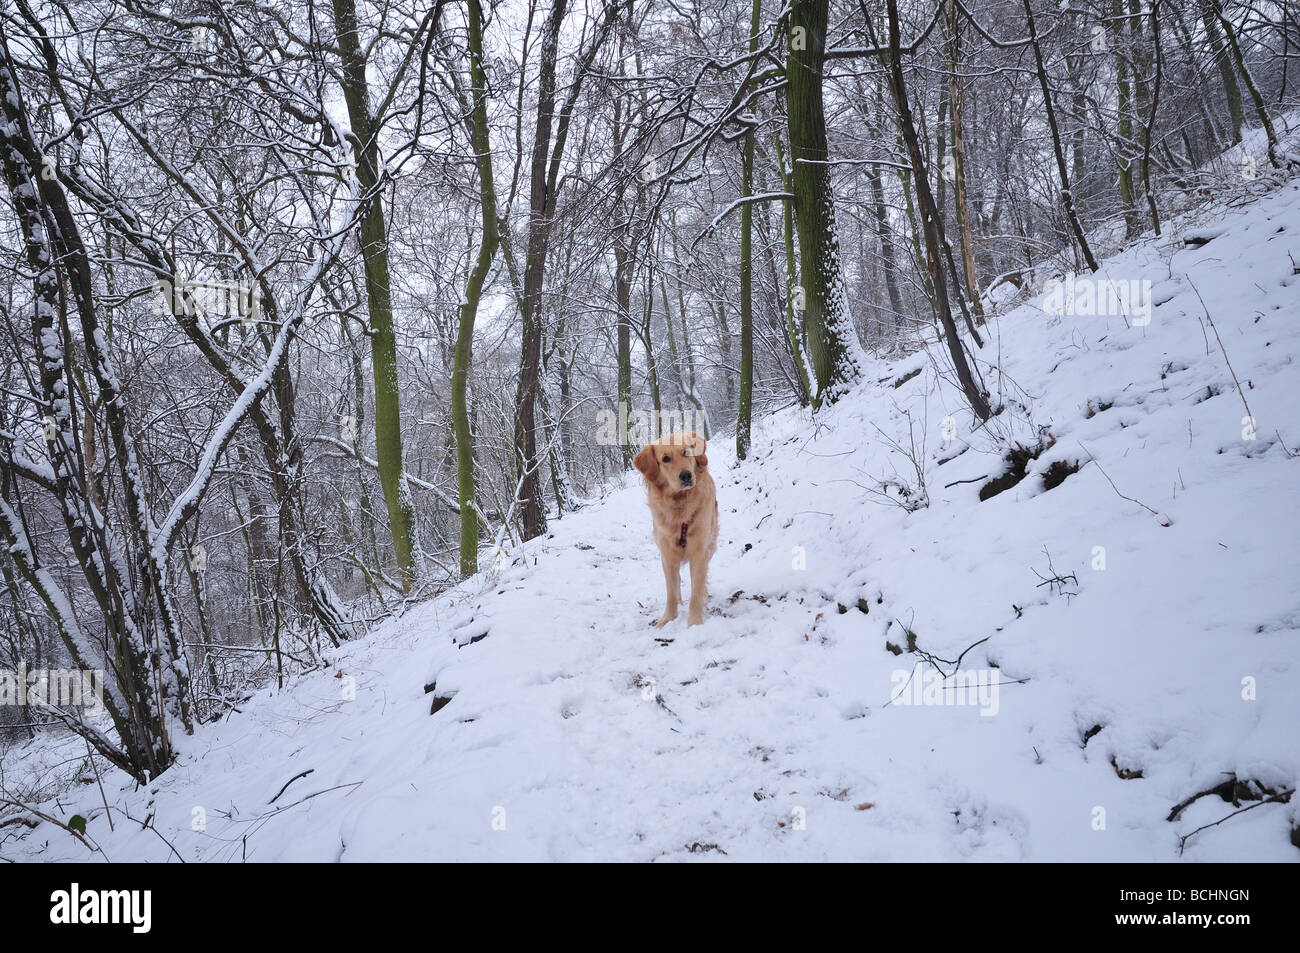 A dog in woods in winter - Stock Image